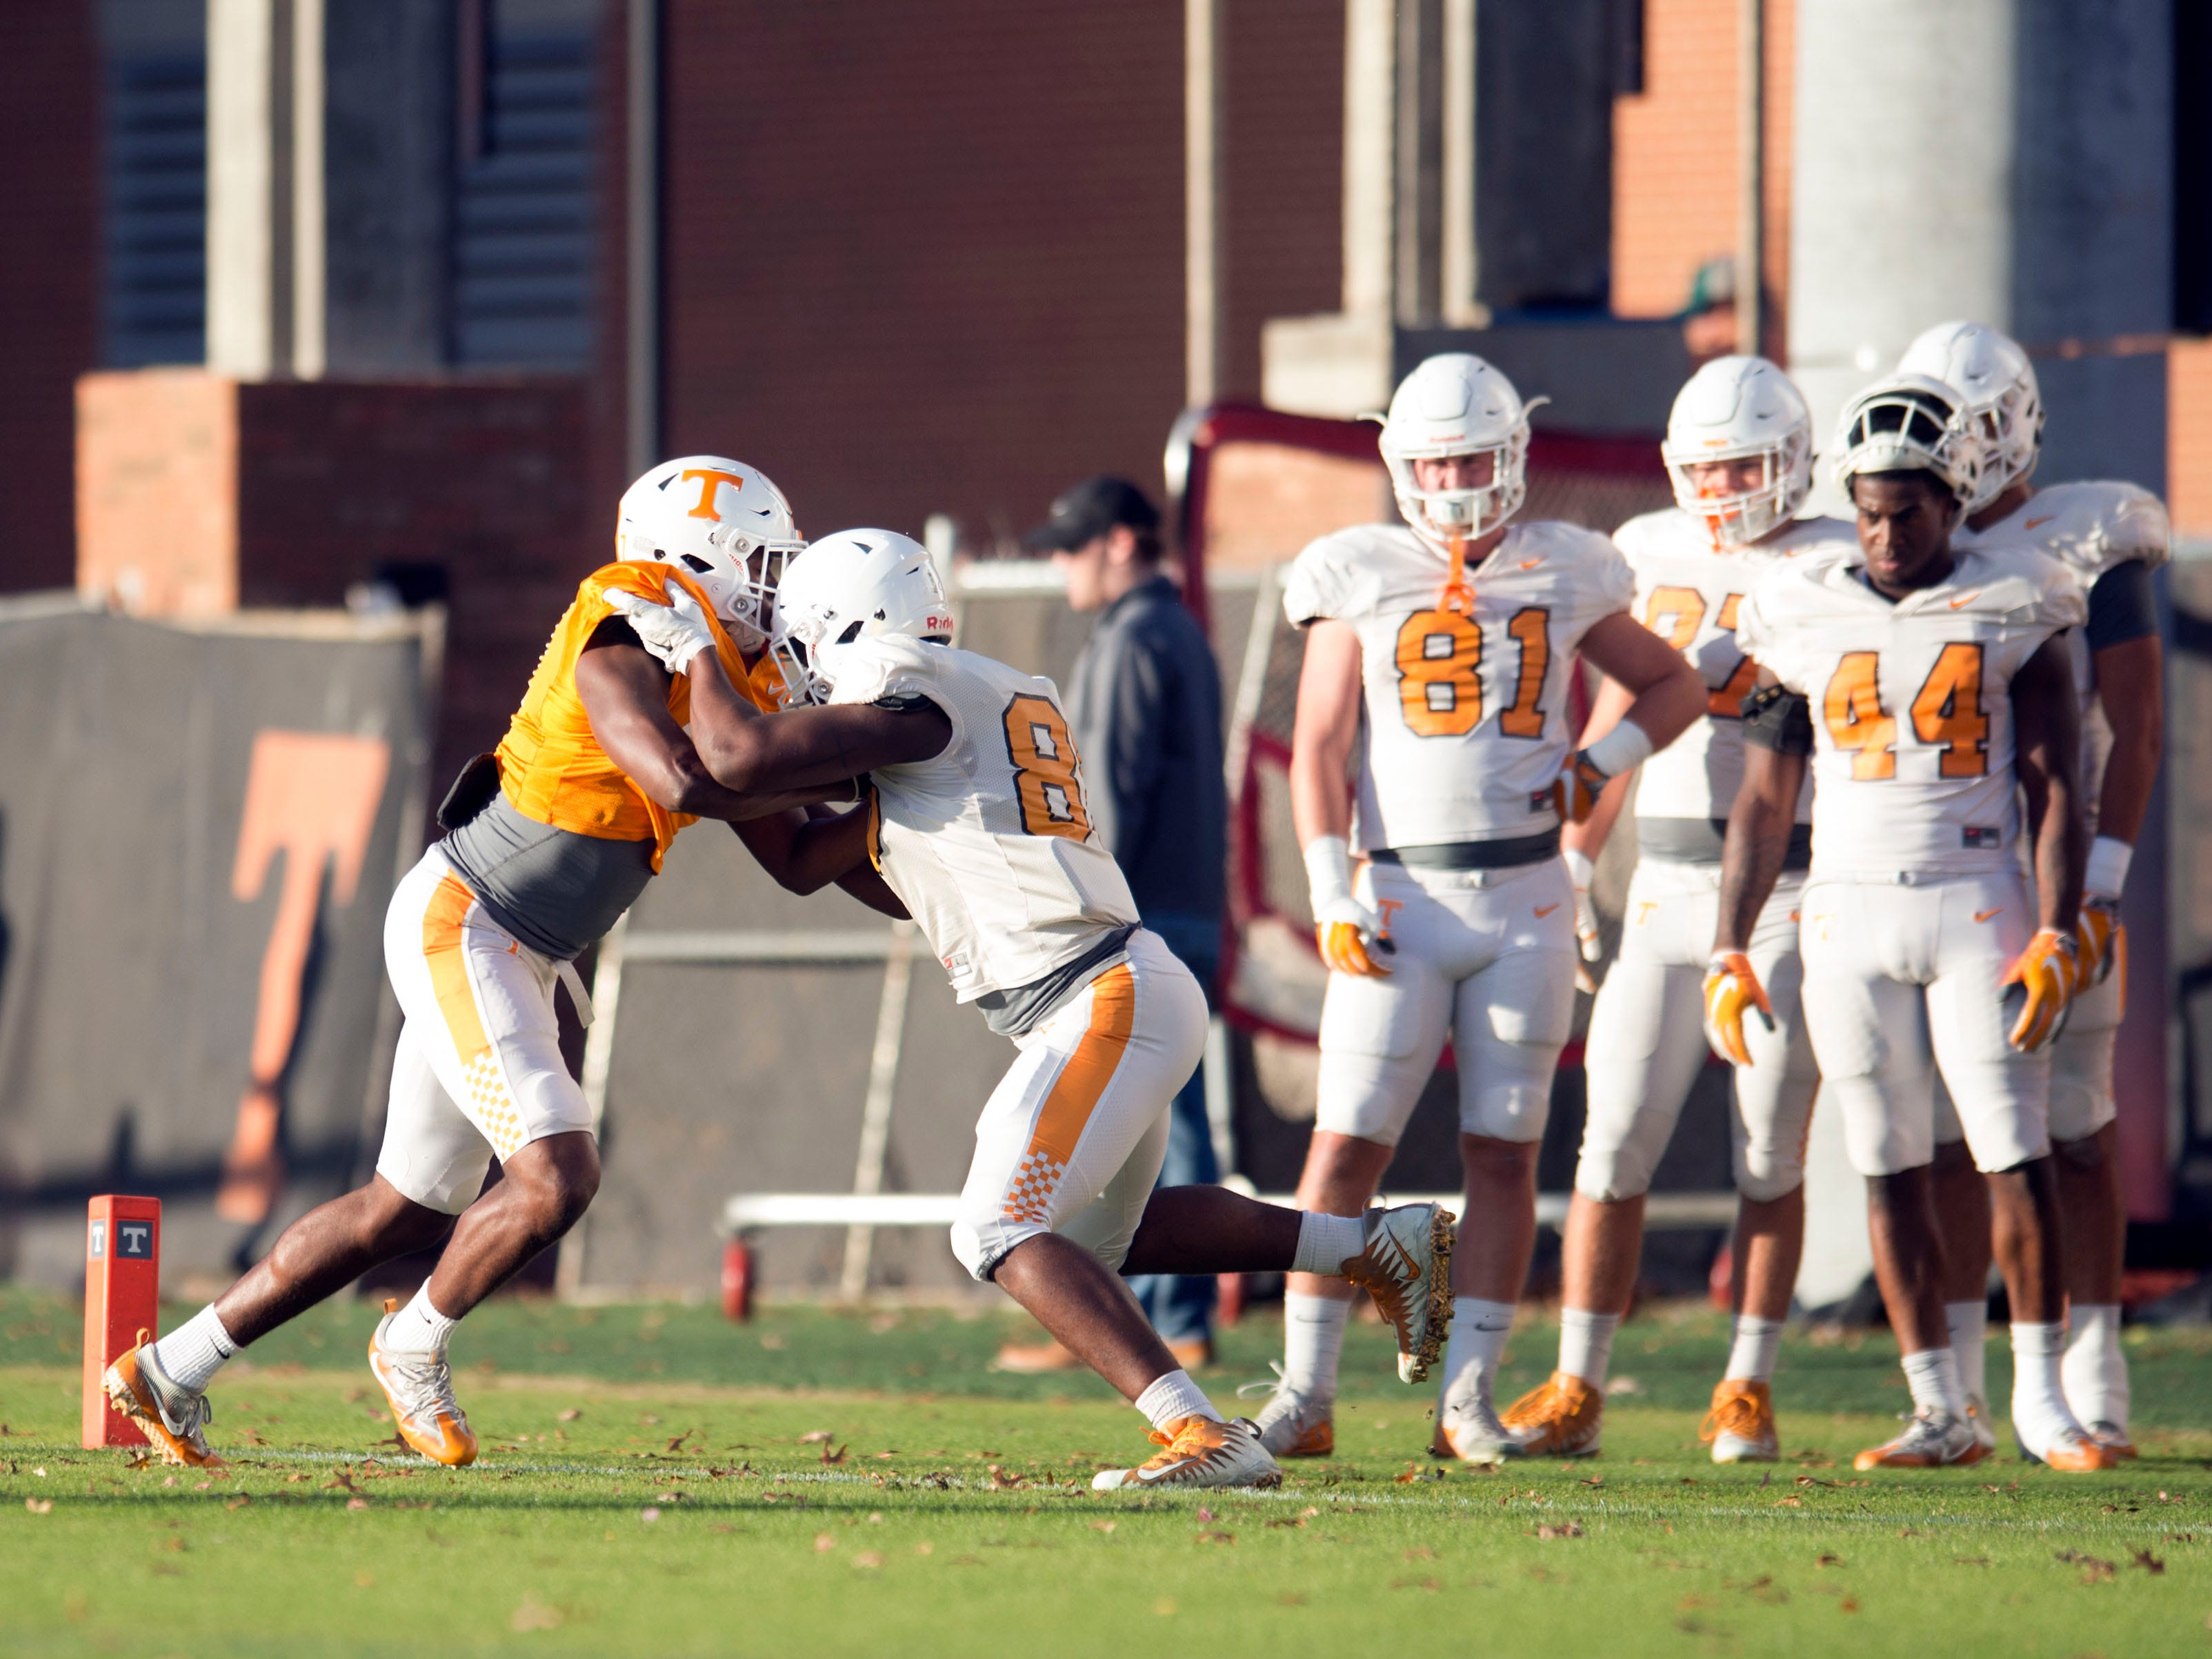 Tennessee tight ends run drills during football practice on Tuesday, November 6, 2018.